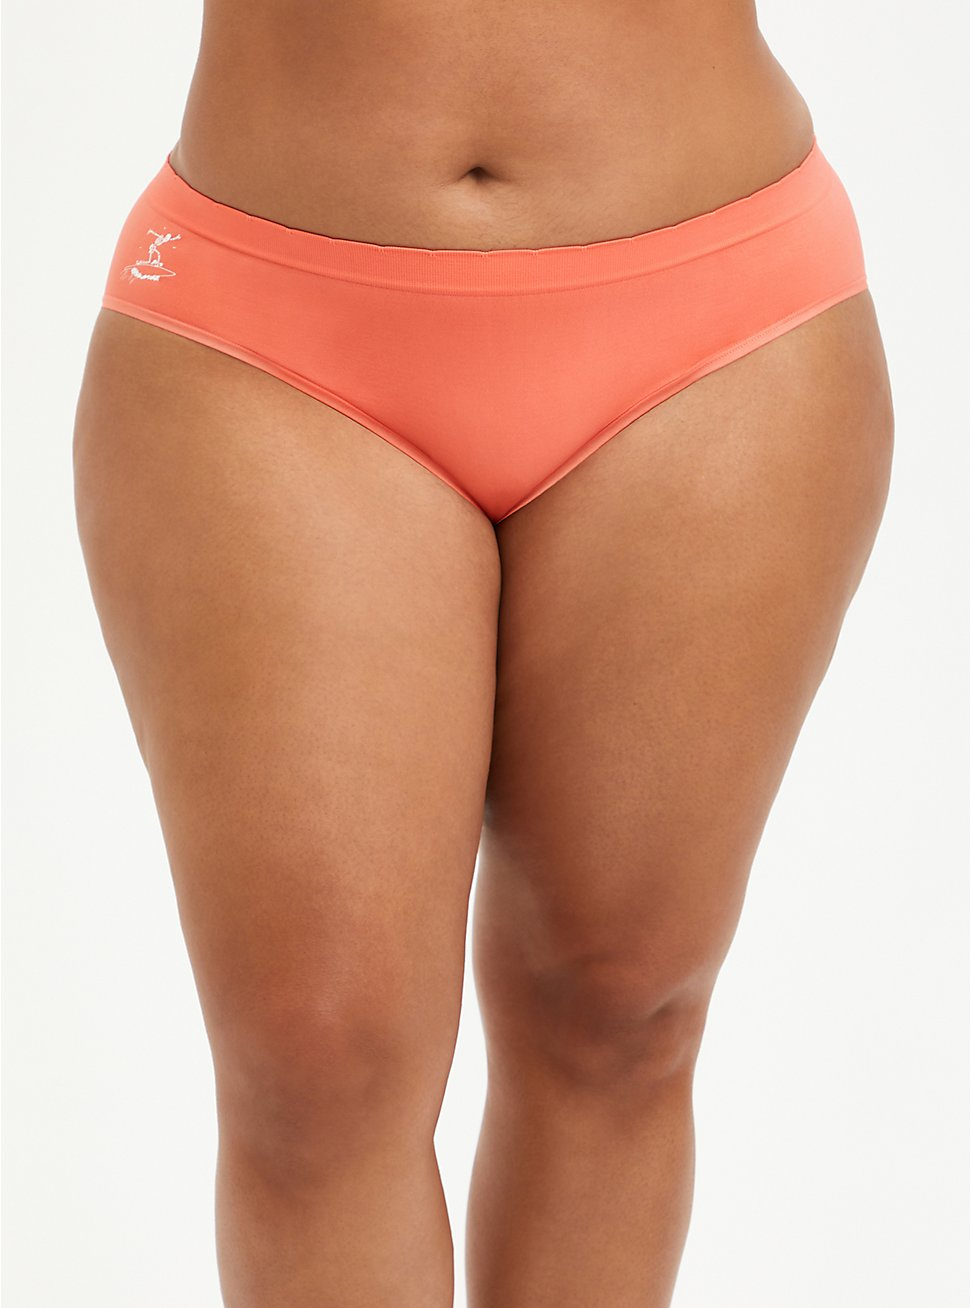 Seamless Hipster Panty - Surfing Skeleton Coral, Surfing Skeleton- CORAL, hi-res